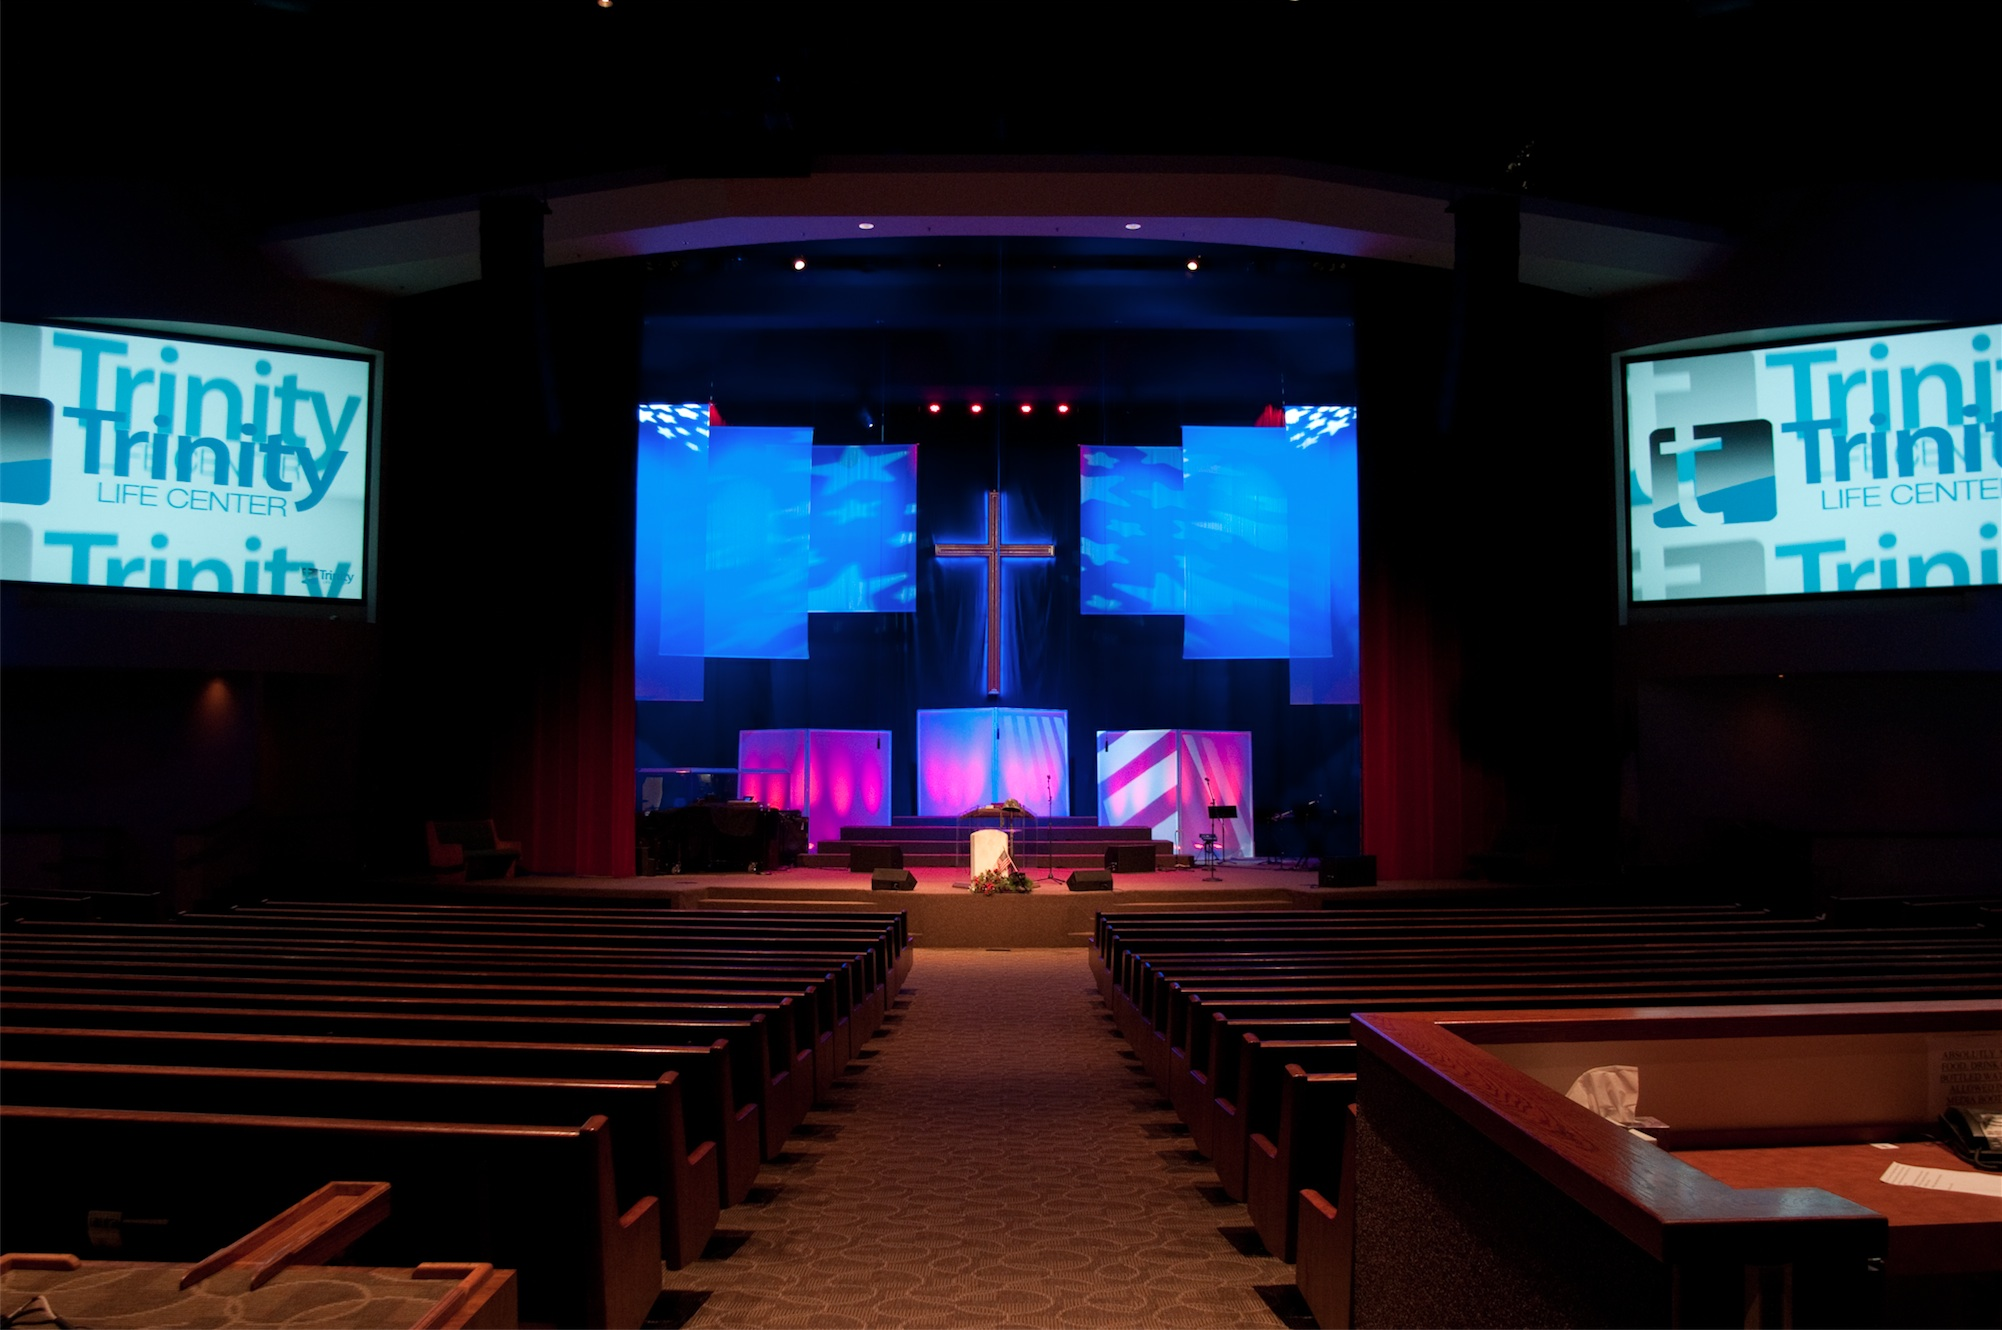 Church Stage Designs For Small Churches | Joy Studio Design Gallery ...